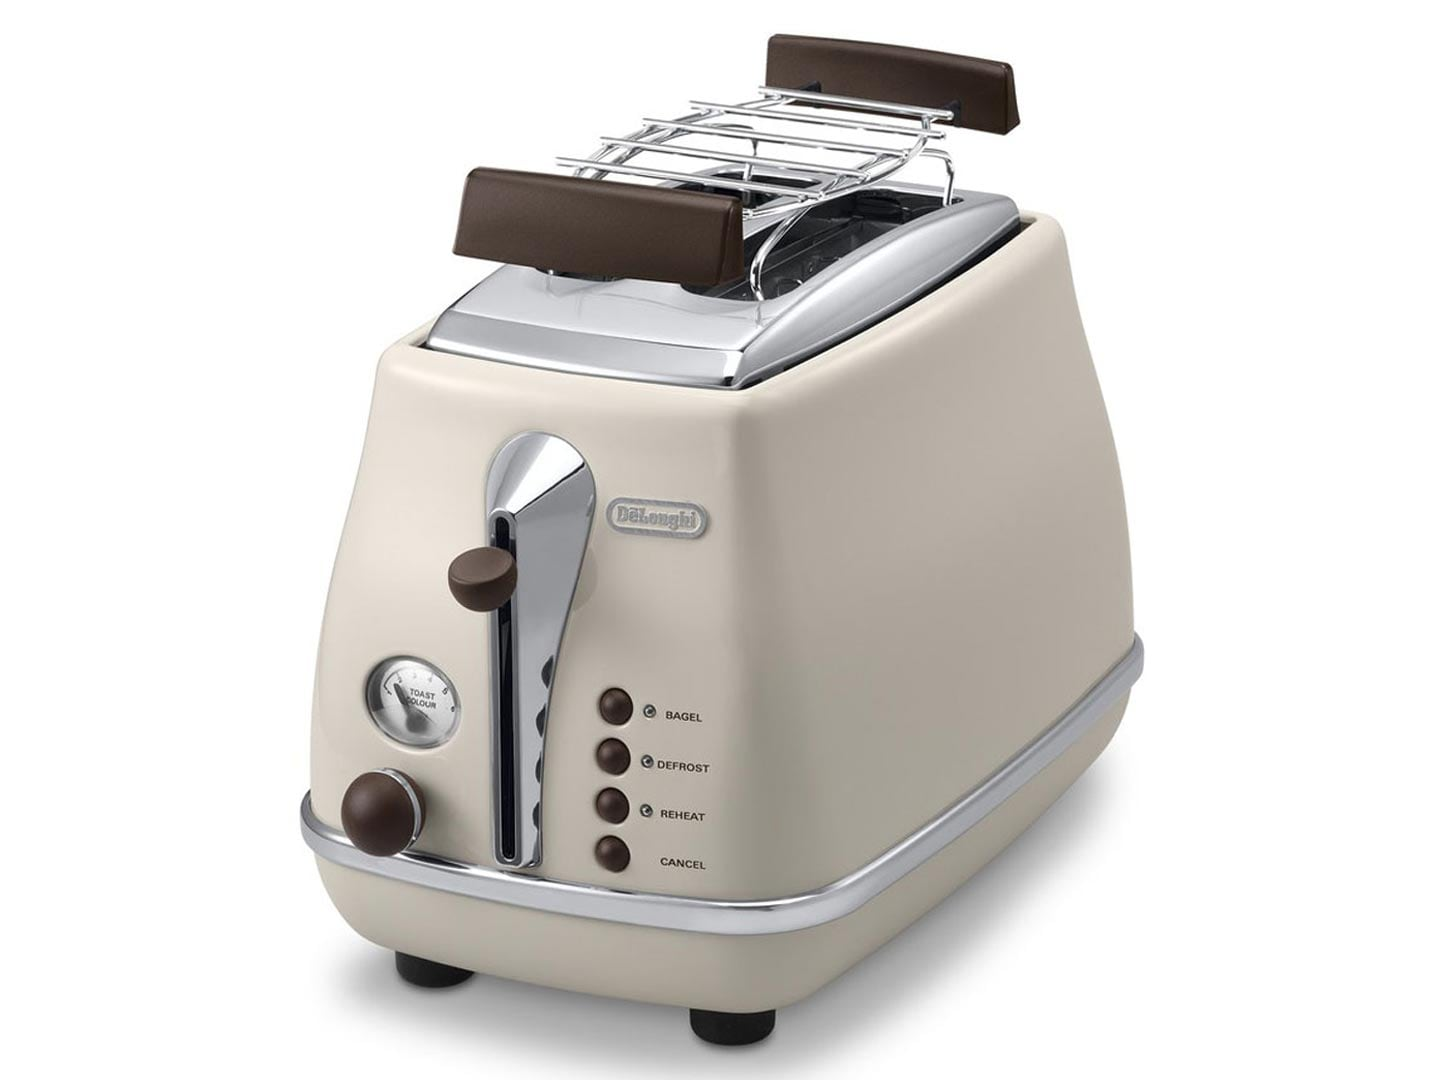 delonghi ctov 2103 bg toaster icona vintage creme radio. Black Bedroom Furniture Sets. Home Design Ideas